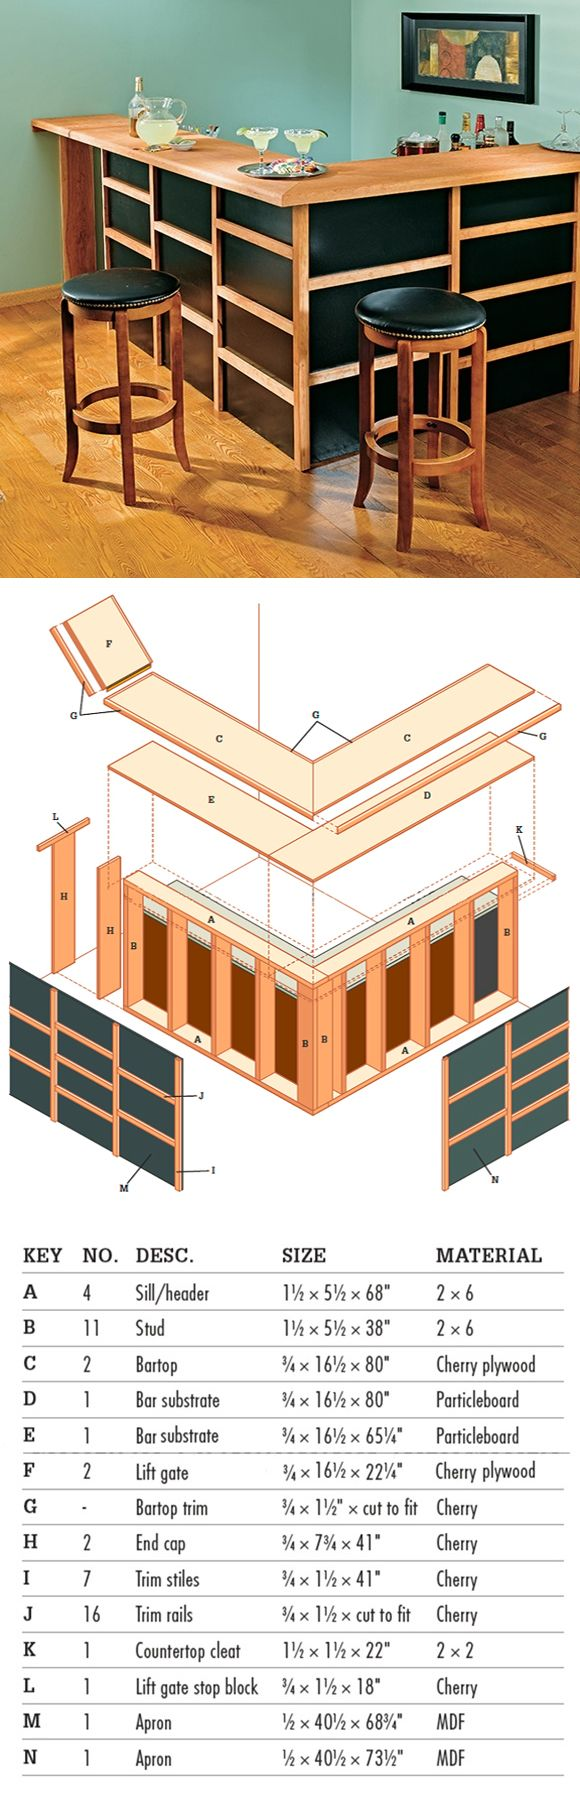 How to build a basement bar ... free specs cutting lists and plans. | Wood Plans and Wood Project Ideas | Pinterest | Basements Cuttings and Bar & How to build a basement bar ... free specs cutting lists and plans ...